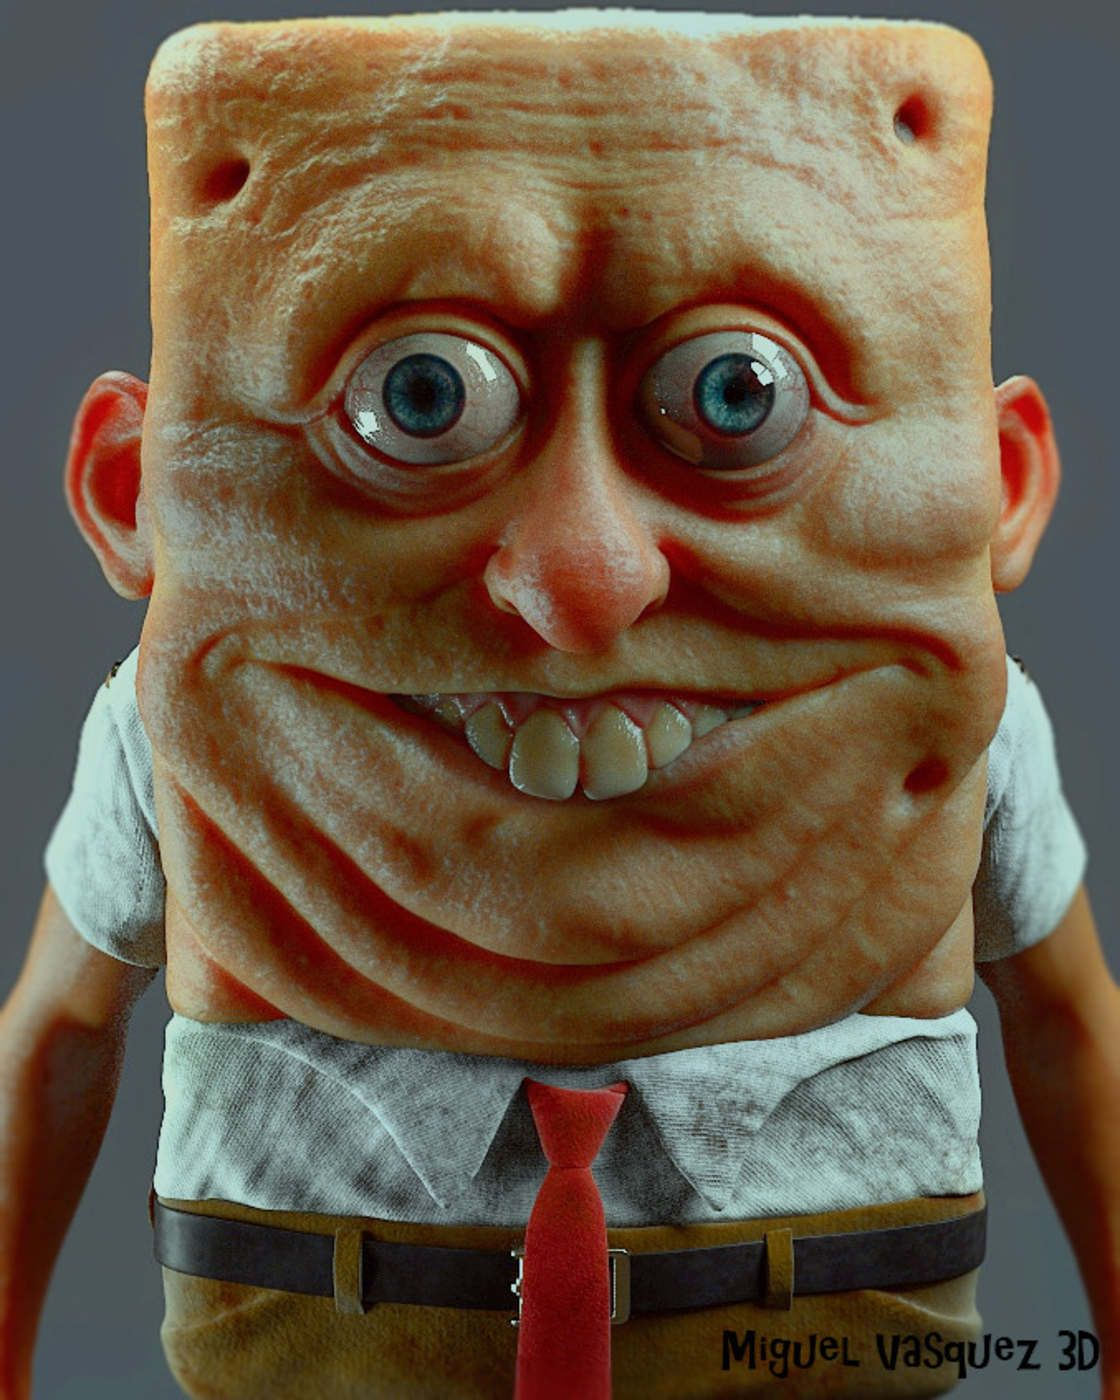 Nightmare Fuel Realistic Version Of SpongeBob And Patrick - This artist transformed pokmon characters into nightmare fuel